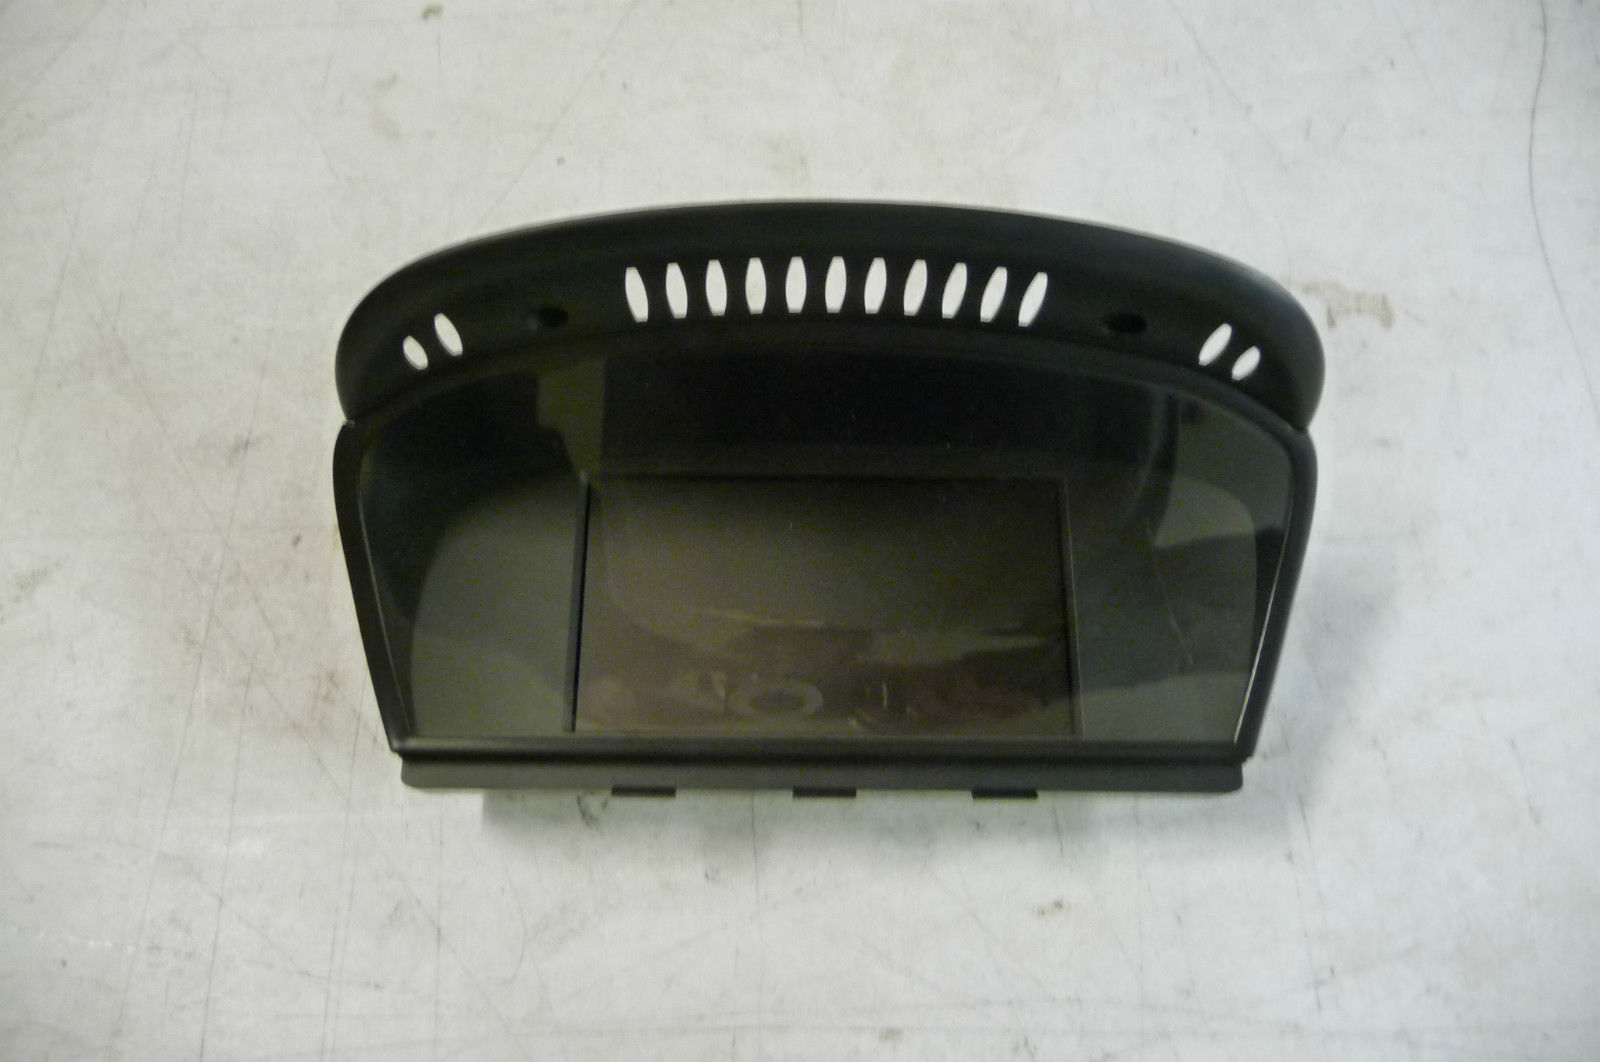 2002 2003 2004 2005 BMW 745i 745Li Navigation Display Screen Monitor Boardmonitor 65826941492 OEM OE